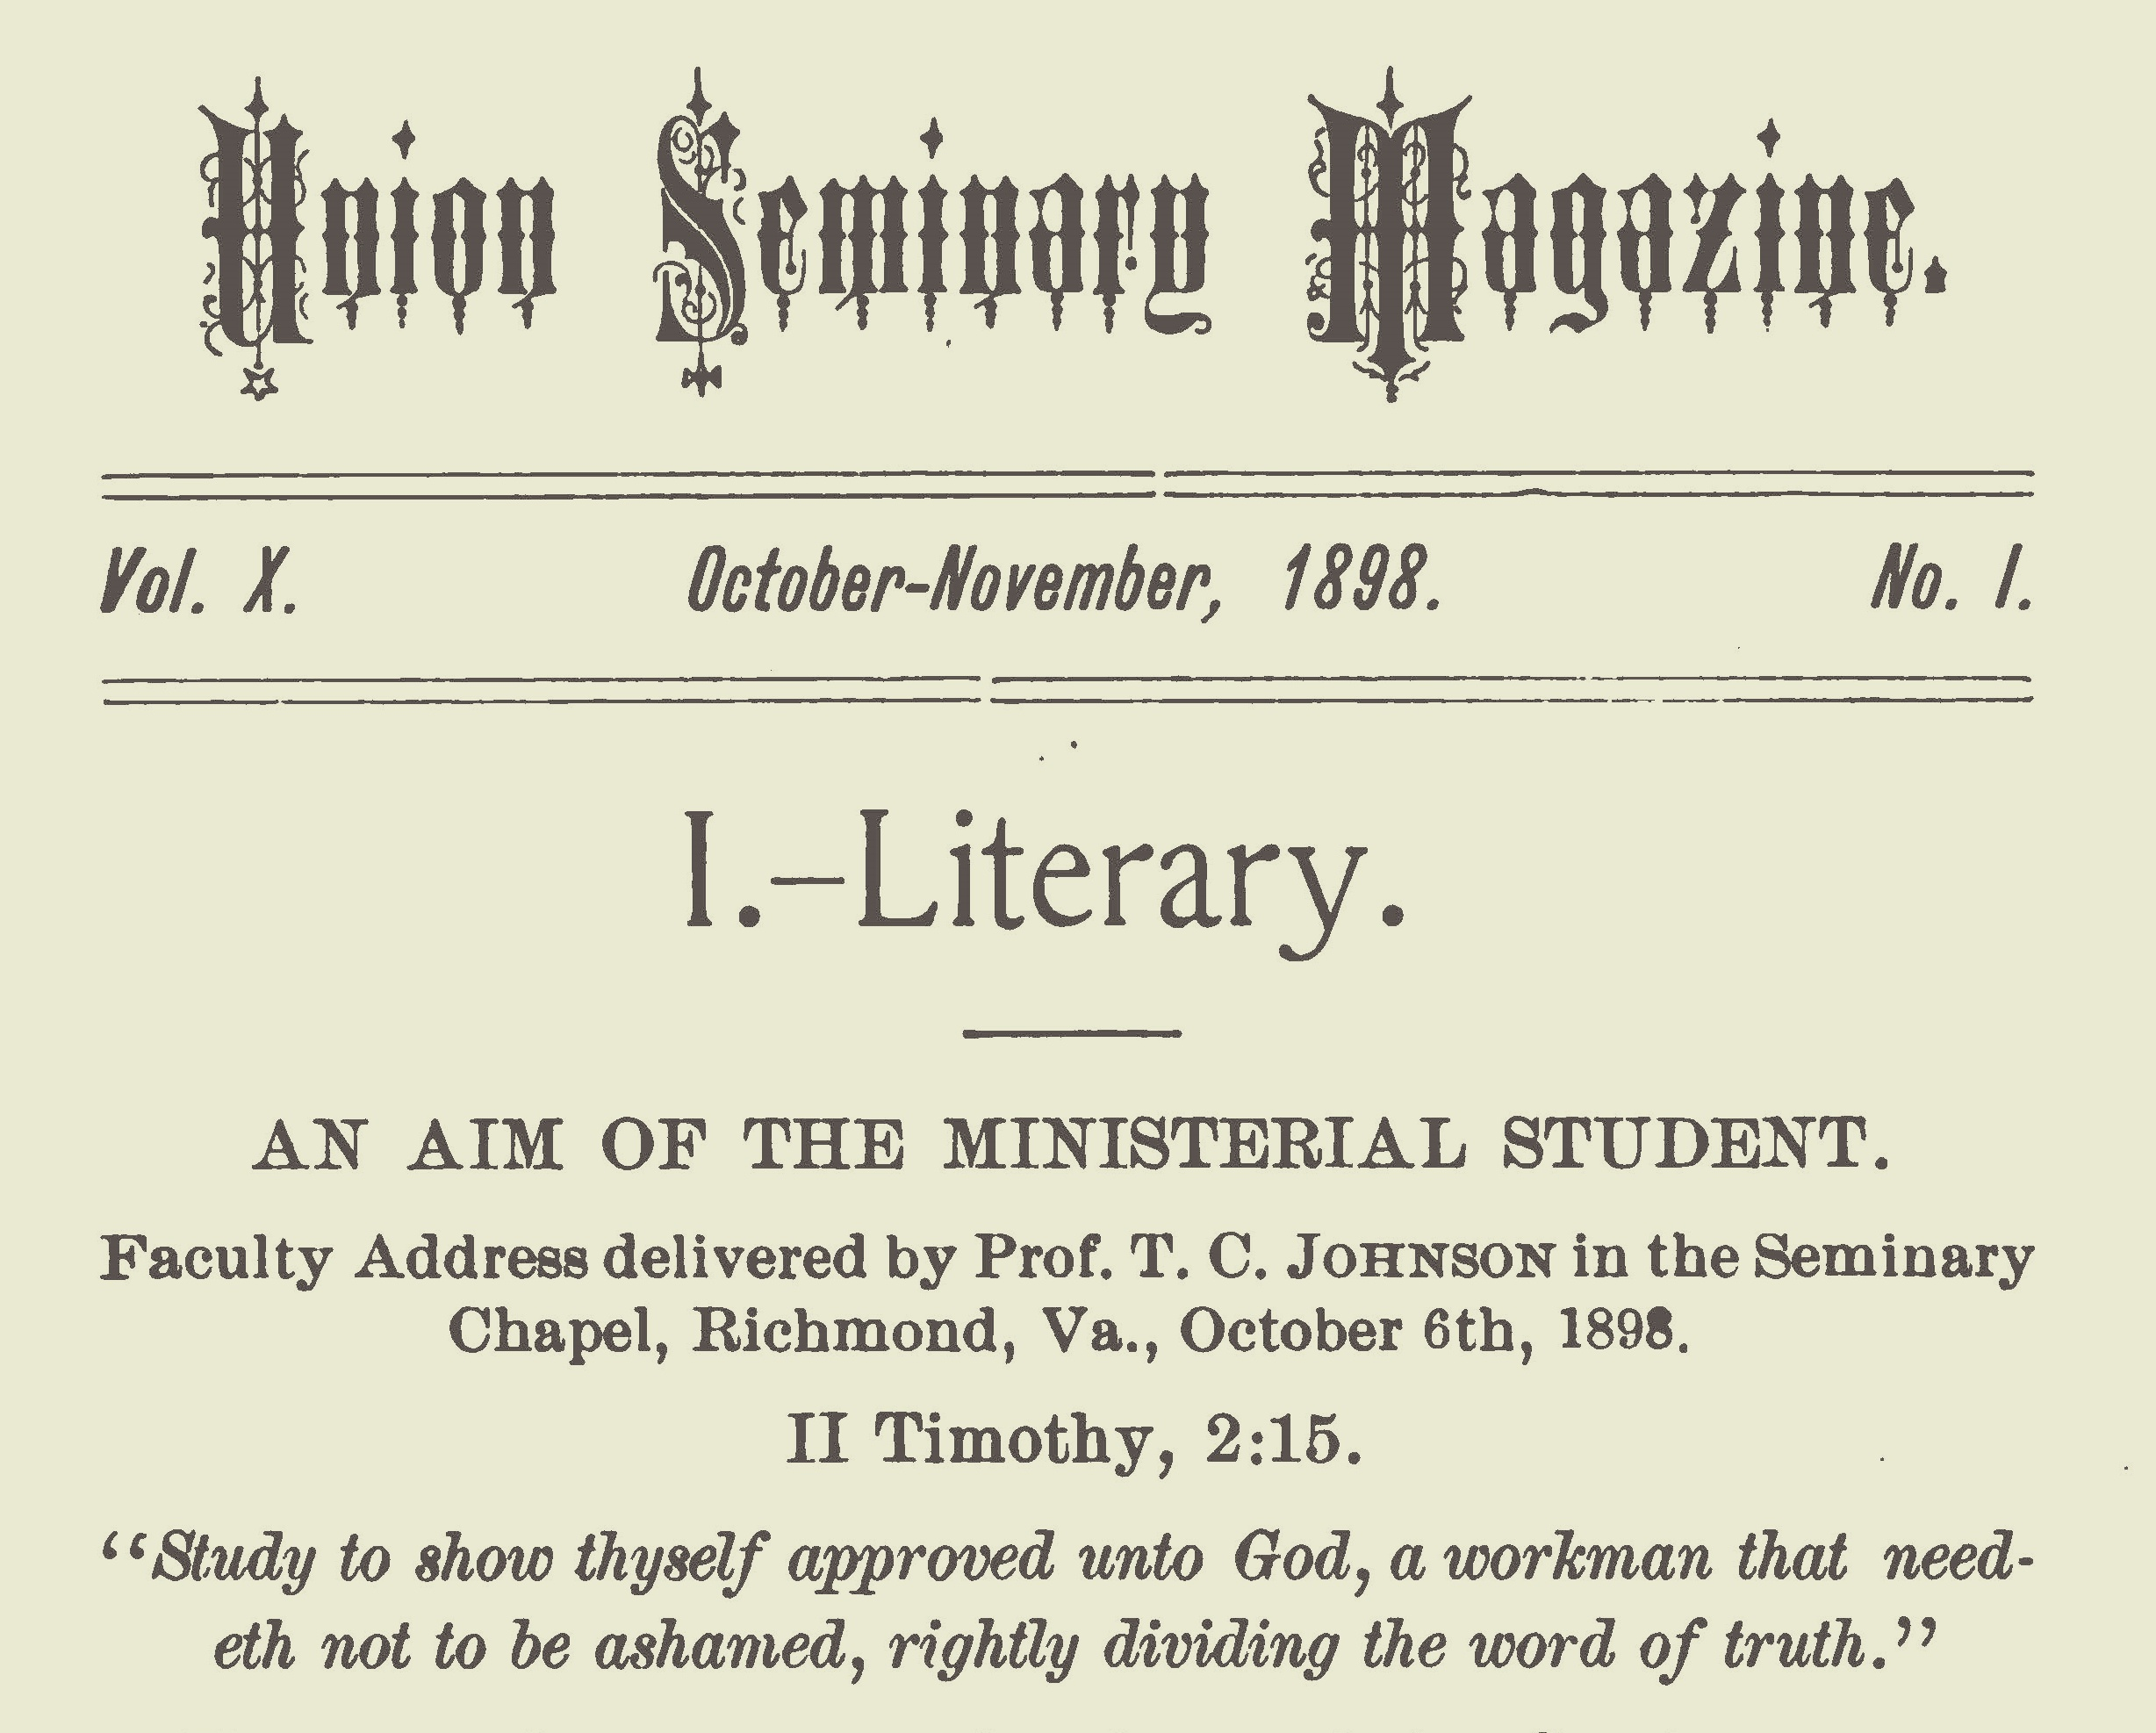 Johnson, Thomas Cary, The Aim of the Ministerial Student Title Page.jpg